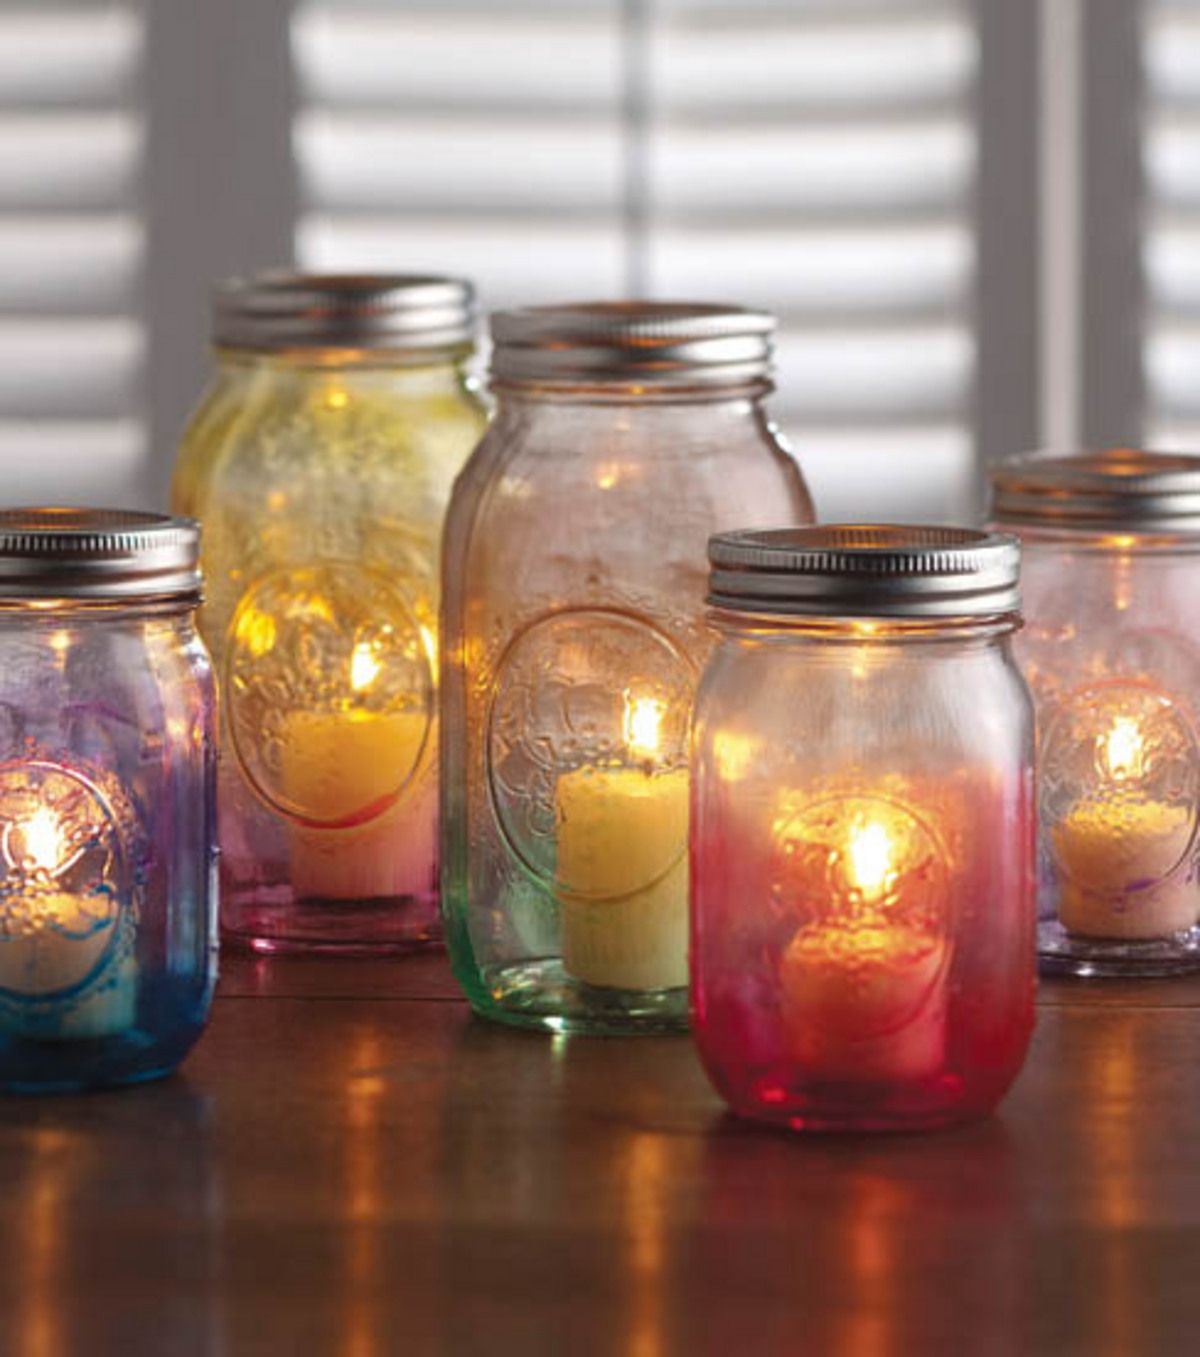 Colored Mod Podge Lanterns at Mason jar diy